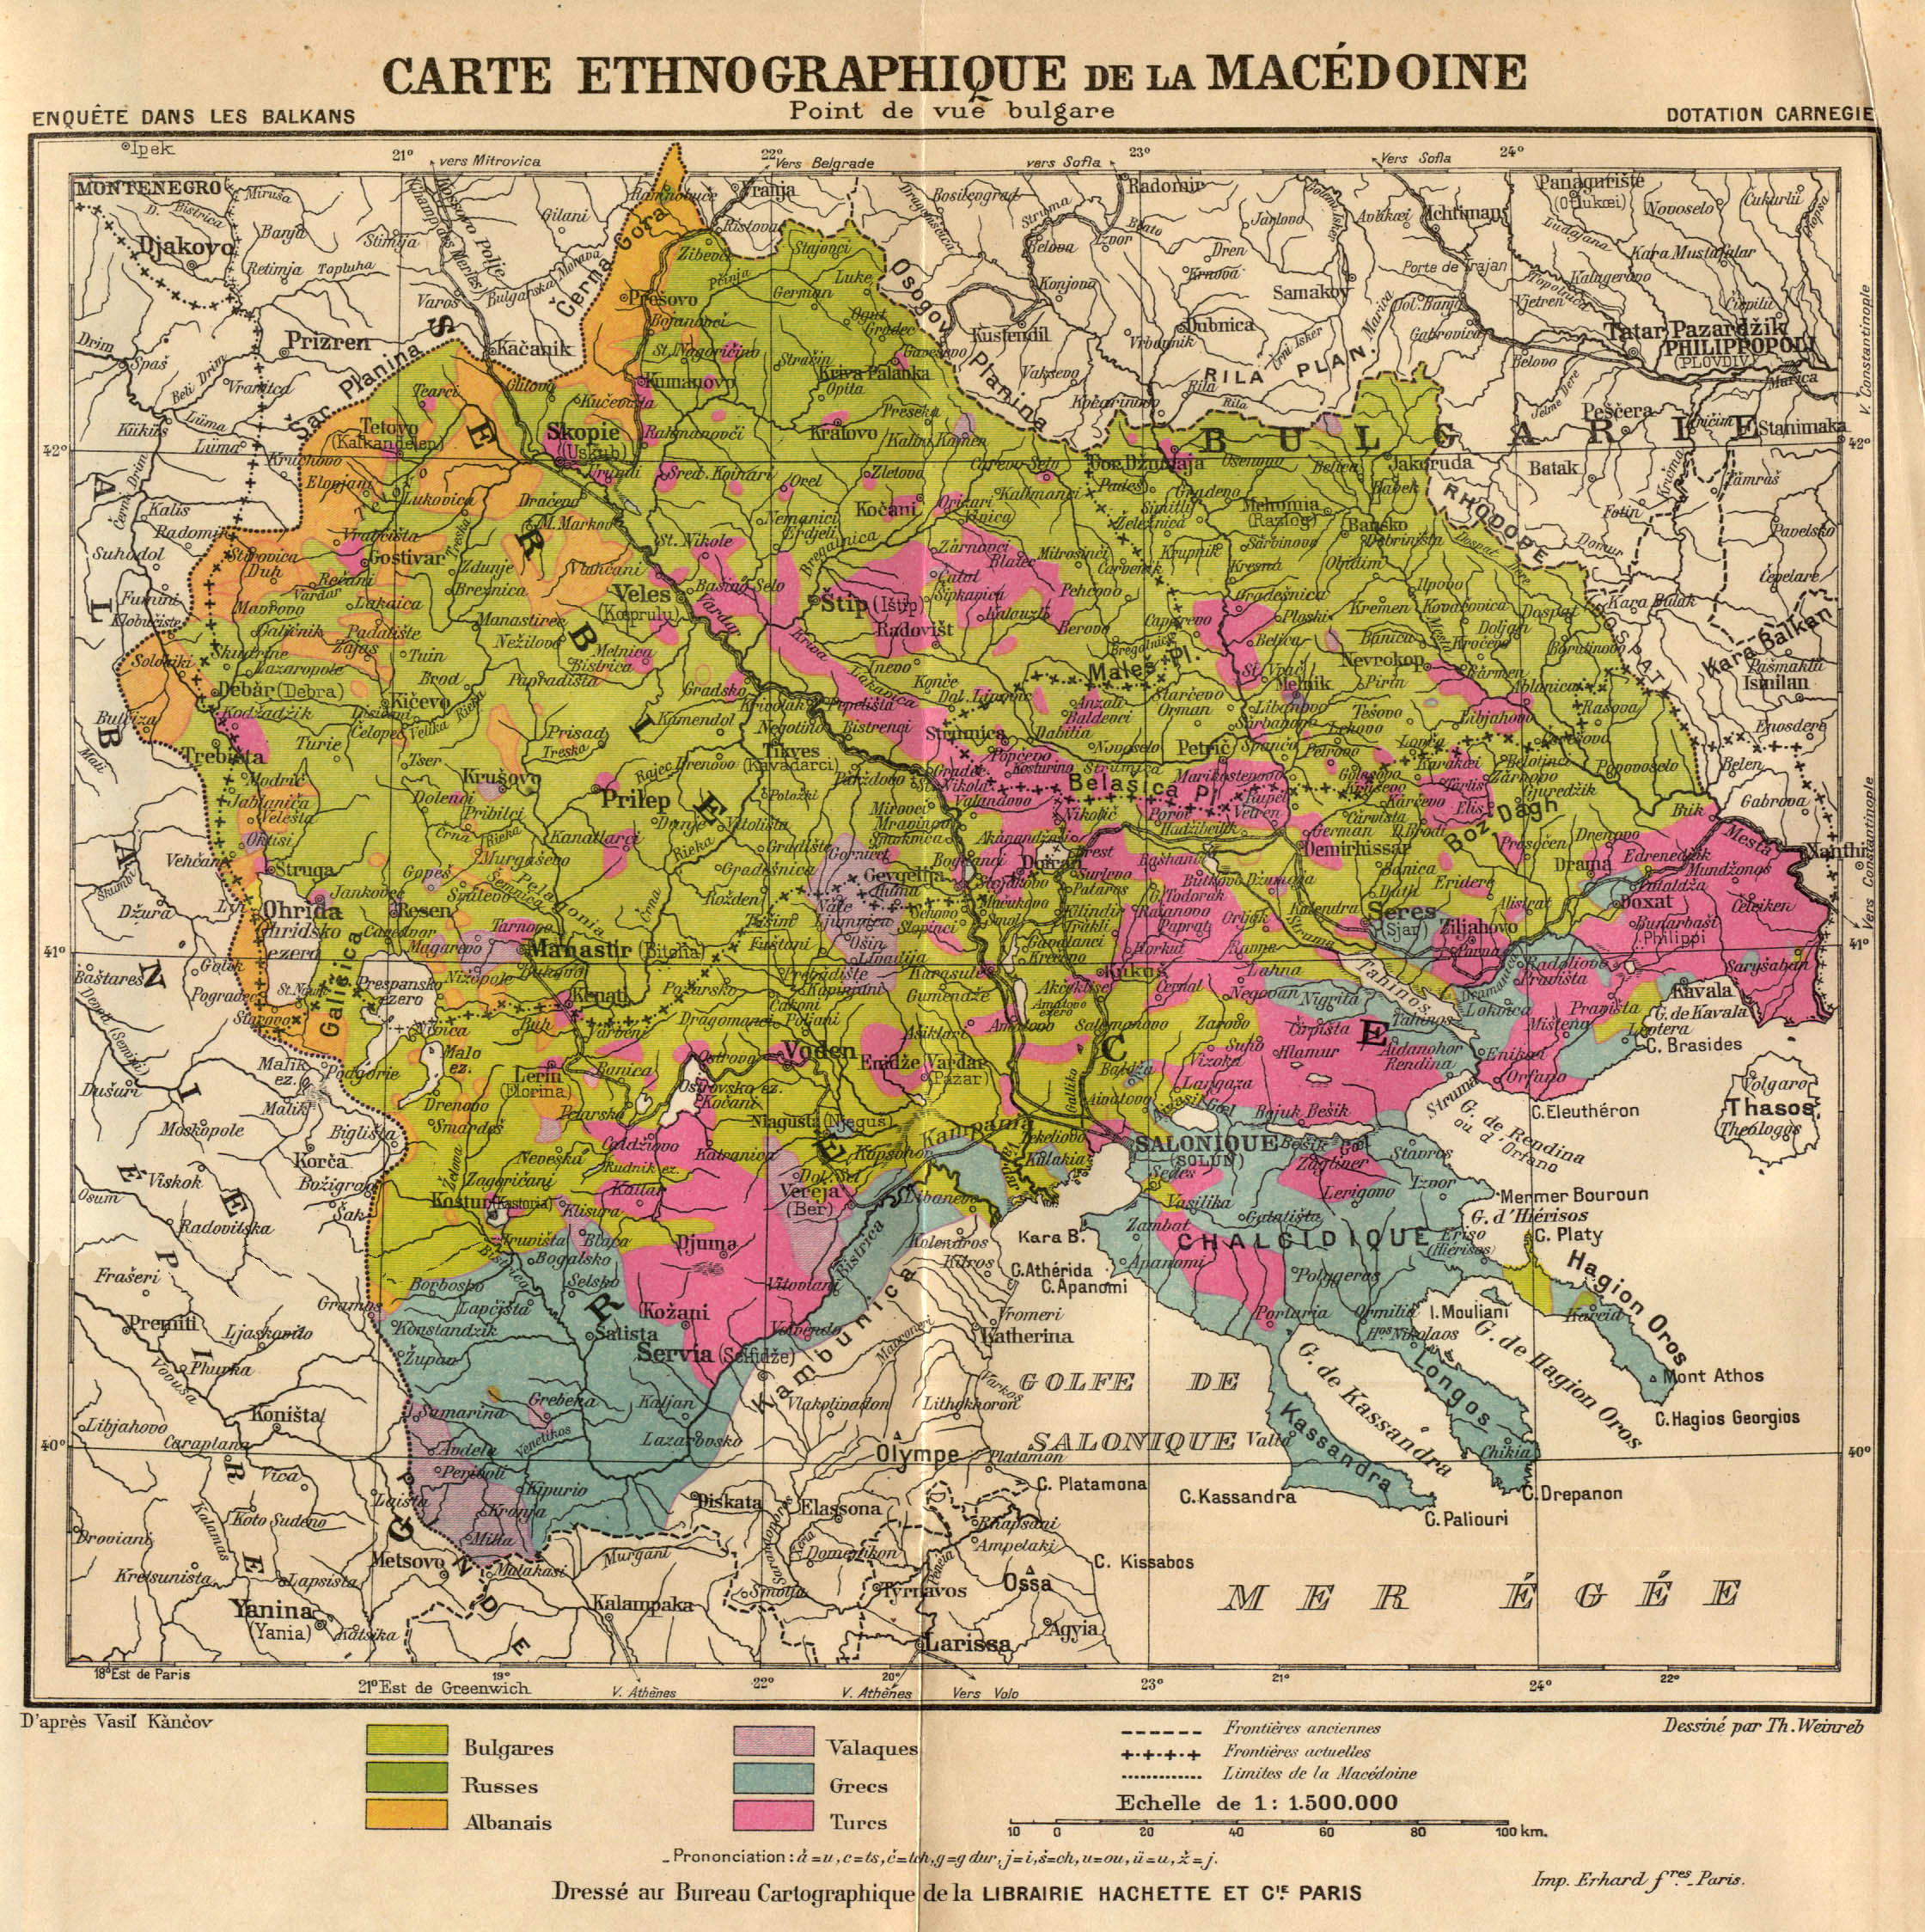 Map of Macedonia from the point of view of the Bulgarians 1914